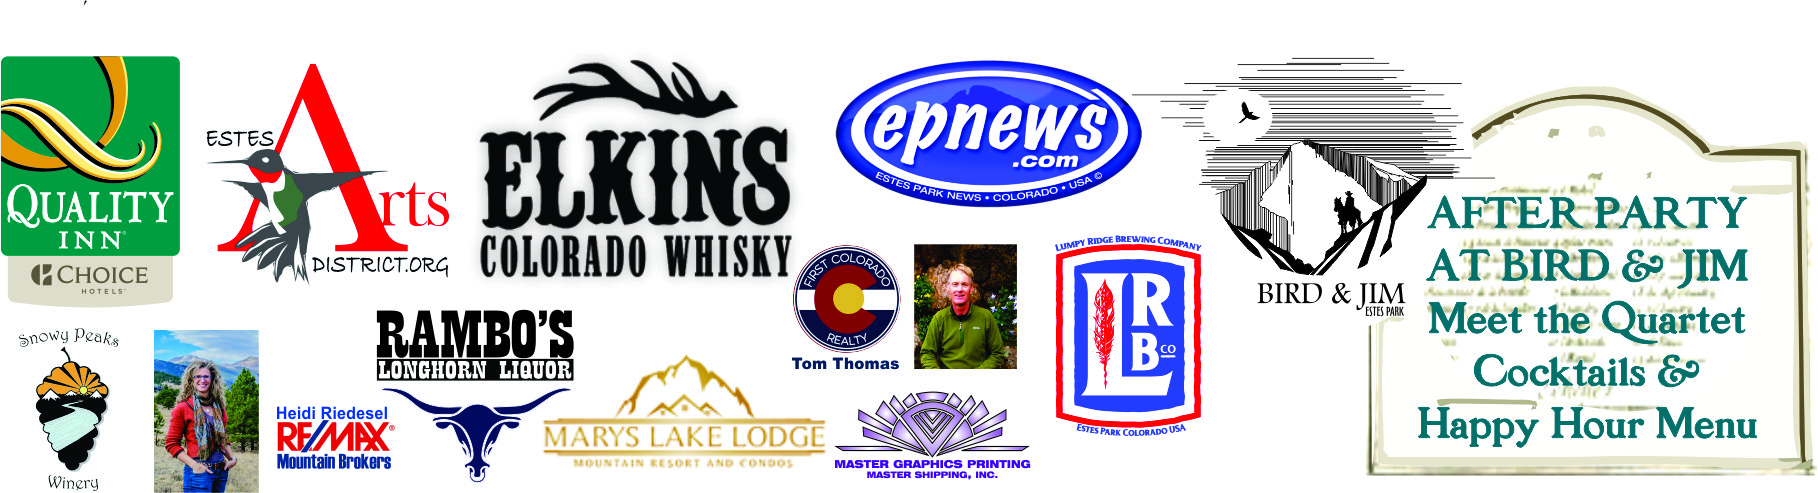 Please Help us thank our Sponsors for this amazing Concert right here in Estes Park!